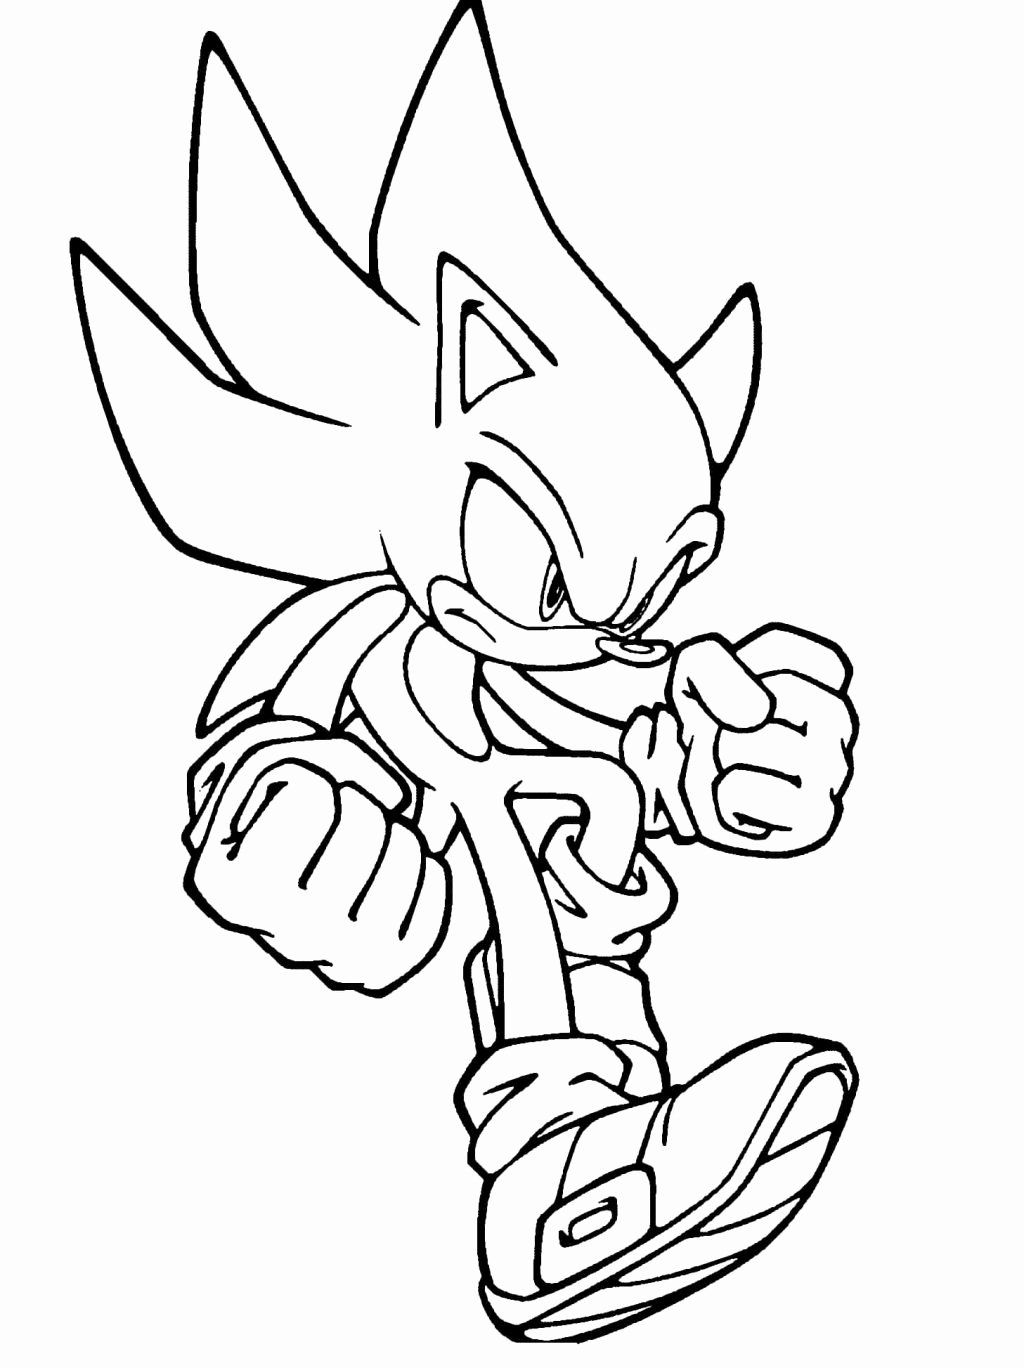 Cute Baby Fox Coloring Pages Elegant Coloring Books Sonic Coloring Pages Pet Animal Sheets Fox Coloring Page Hedgehog Colors Cartoon Coloring Pages